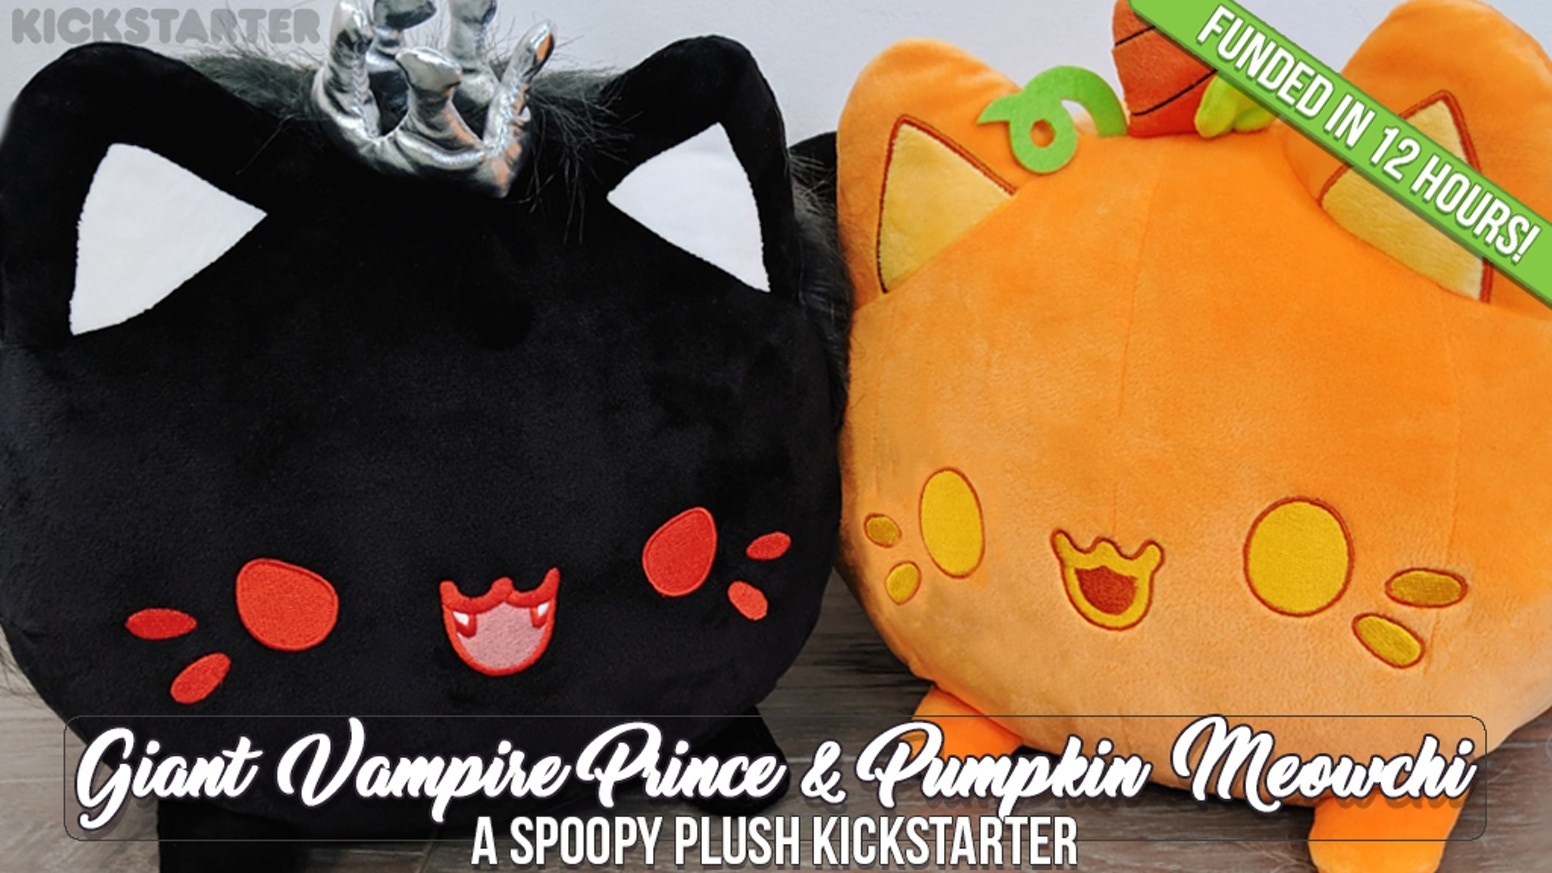 Part of the 'Giant Meowchi Series 2 Plush'! Bring home one ( or both ) spoopy kittens today!